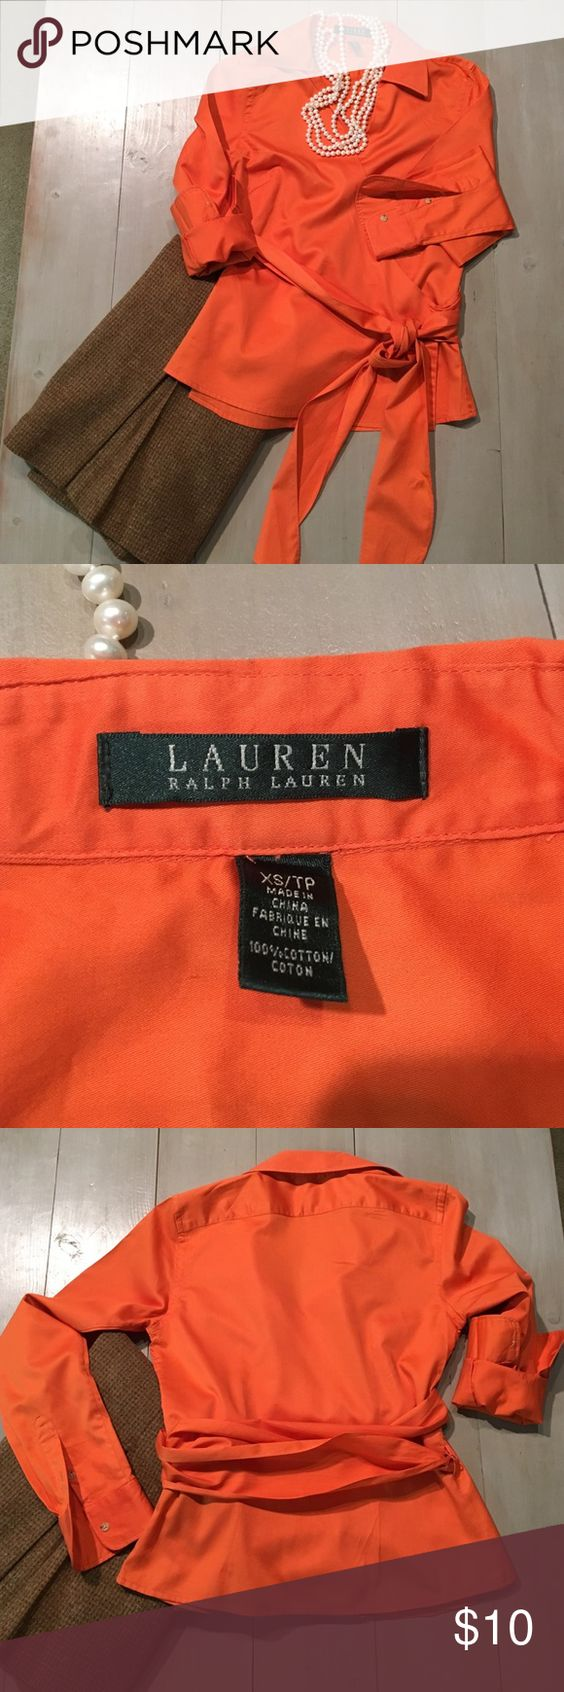 """Beautiful Ralph Lauren Wrap Shirt Size S Long sleeved wrap shirt with a cute collar in a great color. Size Small and fits true to size. Length: shoulder to hem 21"""". Bust around 17"""" or so. 😊 Awesome classy shirt that would look great with any skirt or pants. Lauren Ralph Lauren Tops Blouses"""